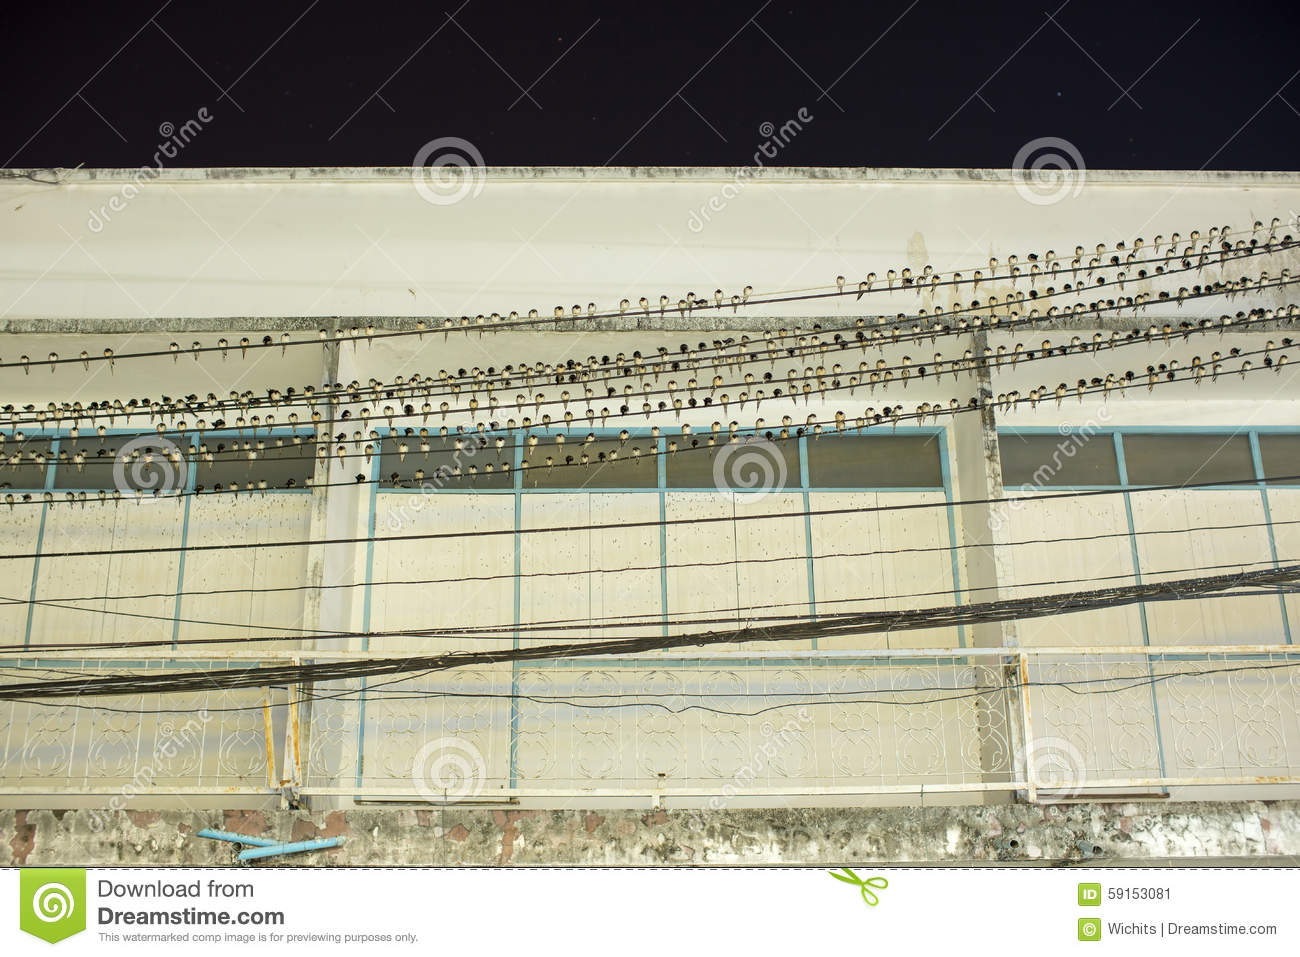 Stupendous Commercial Building Wiring Wire Track Wiring Diagram Database Wiring Digital Resources Operbouhousnl